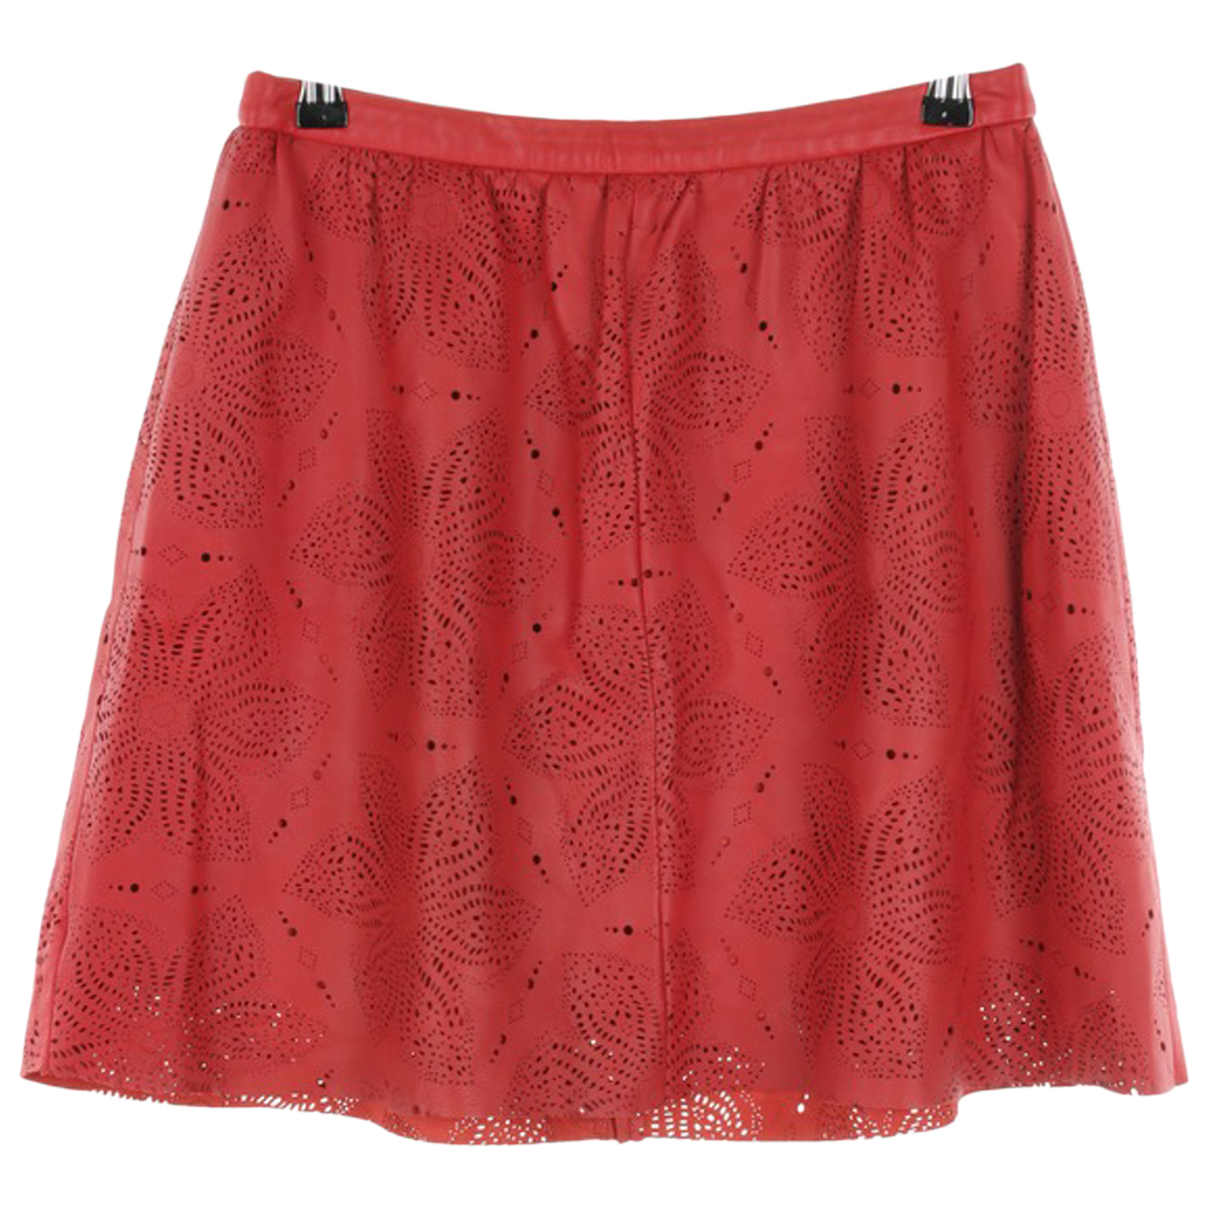 Massimo Dutti N Red Leather skirt for Women M International